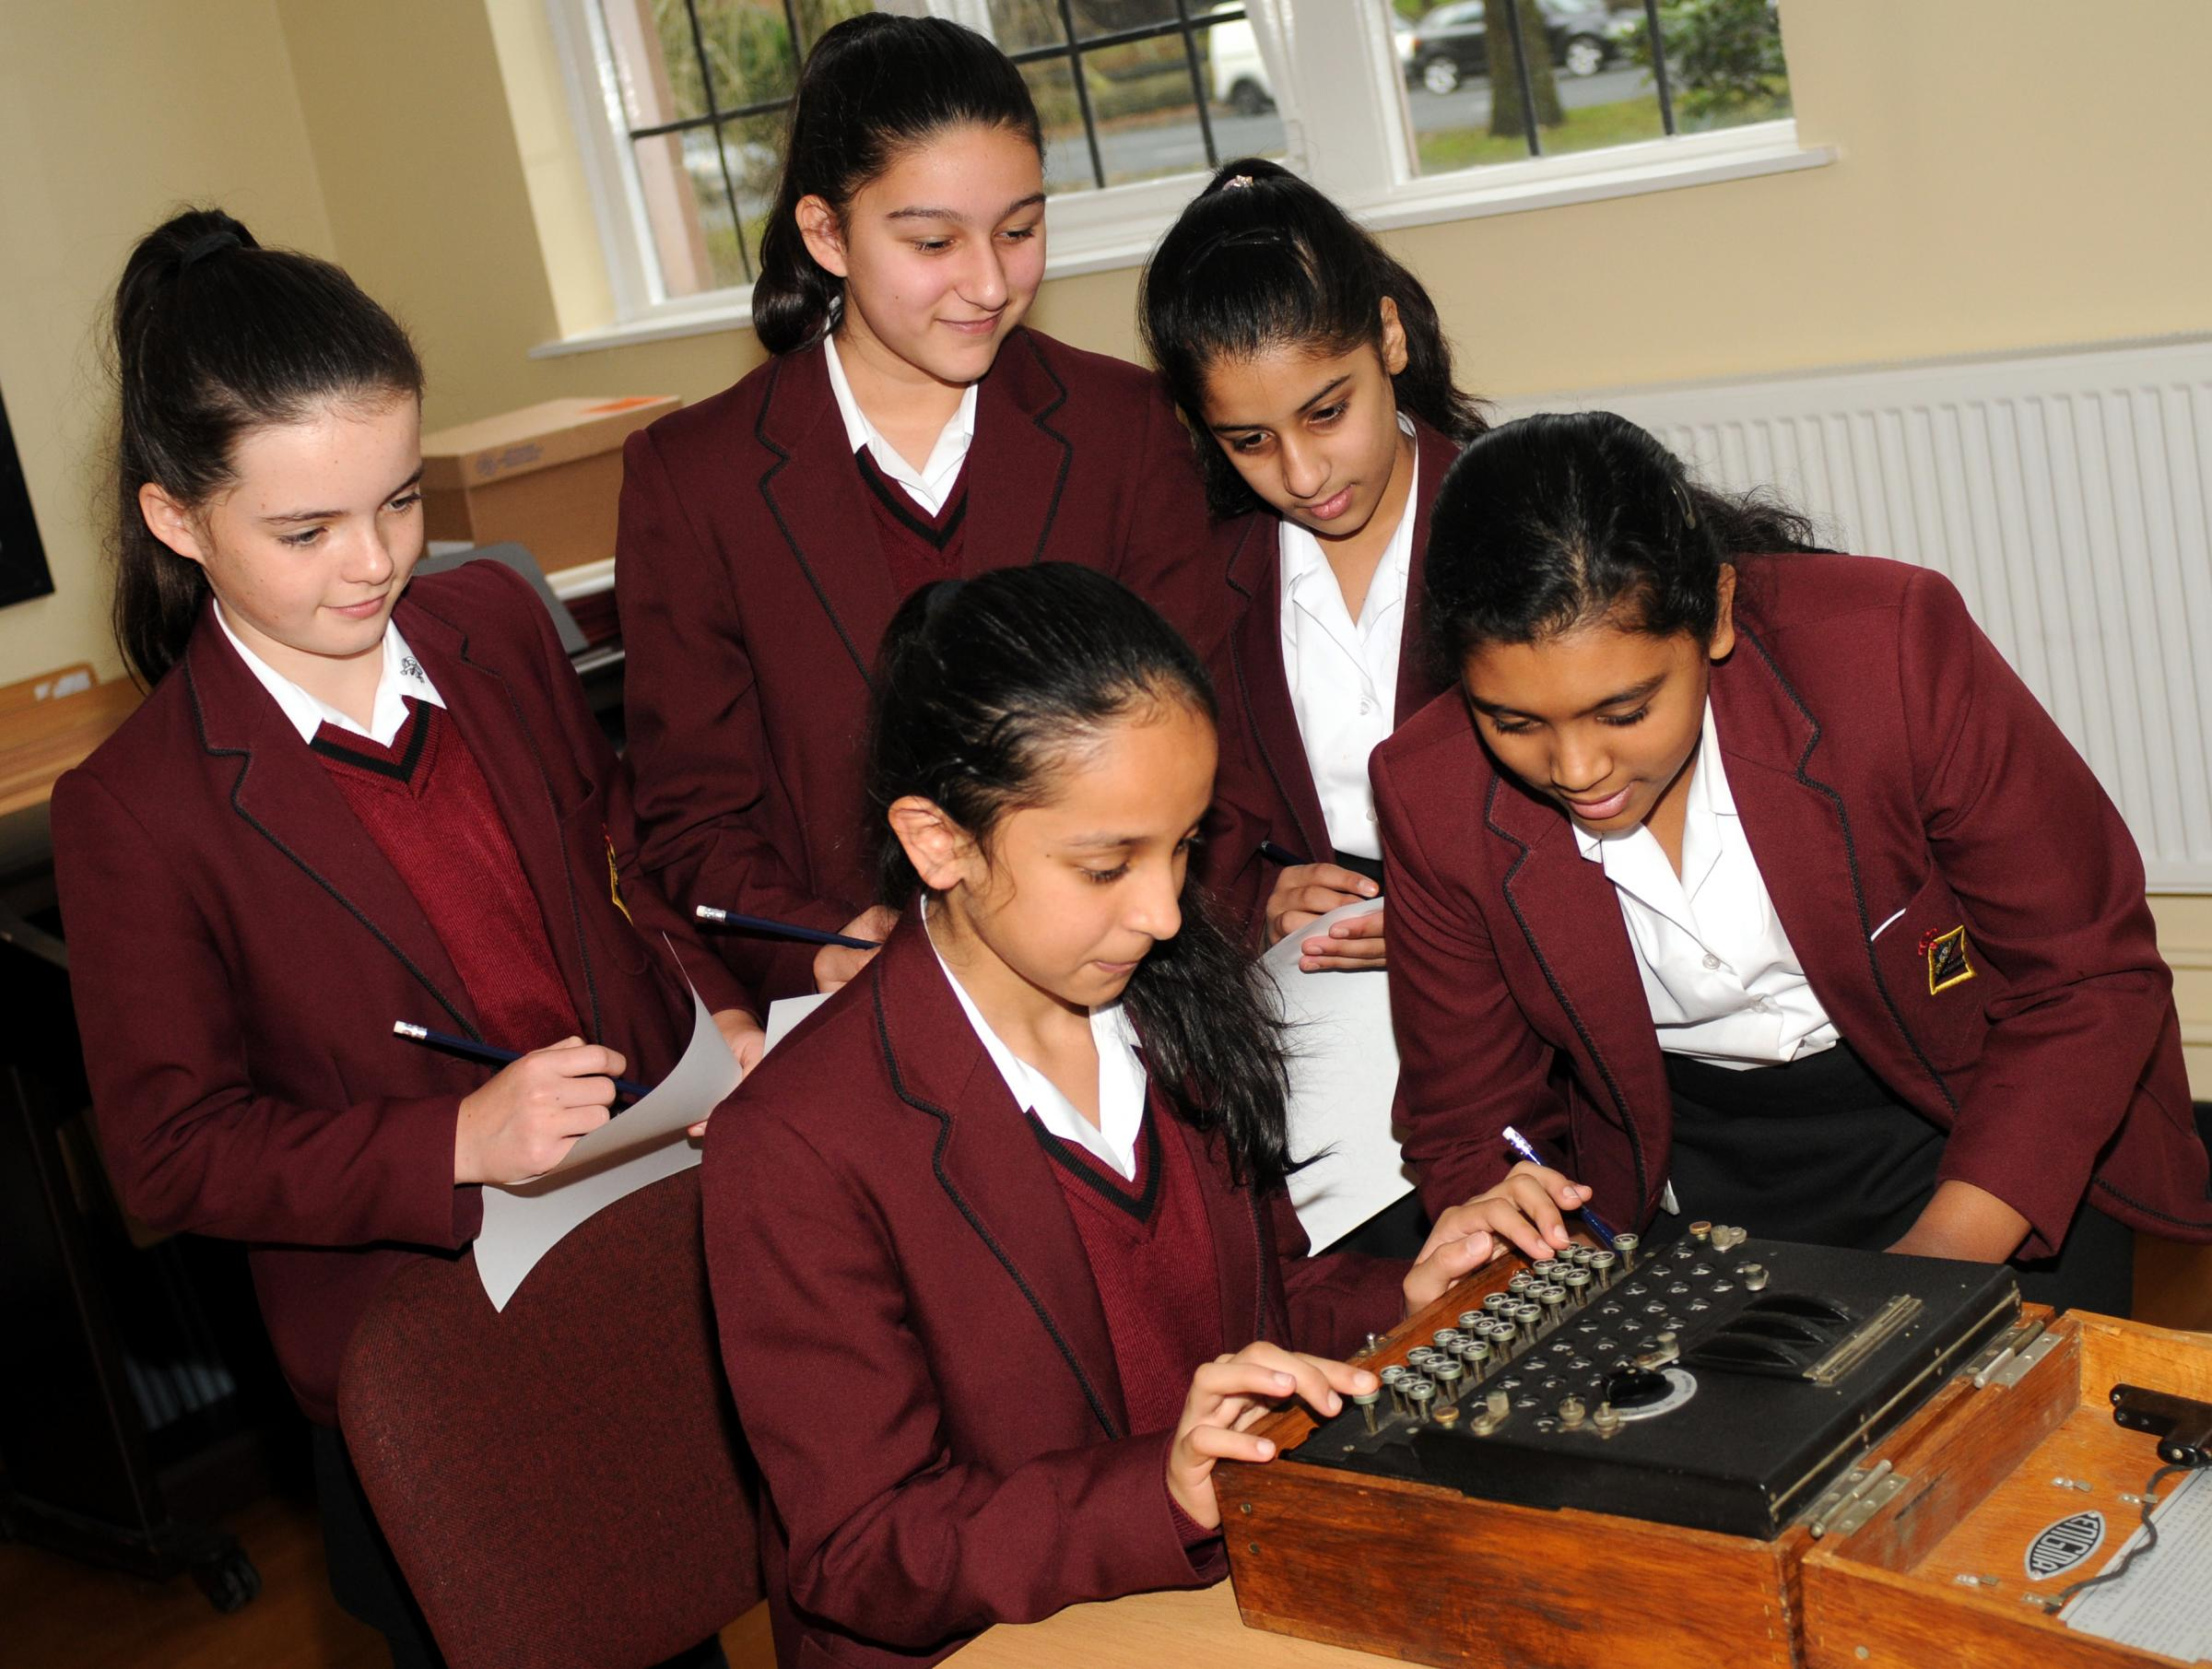 YOUNG MATHEMATICIANS: Iman Javaid, aged 11, types out a coded message on a genuine Enigma machine for fellow pupils, from left, Ruby Schofield, aged 11, Riya Hasija ,aged 12, Emaan Murtaz aged 11, and Adithi Prasad aged 11